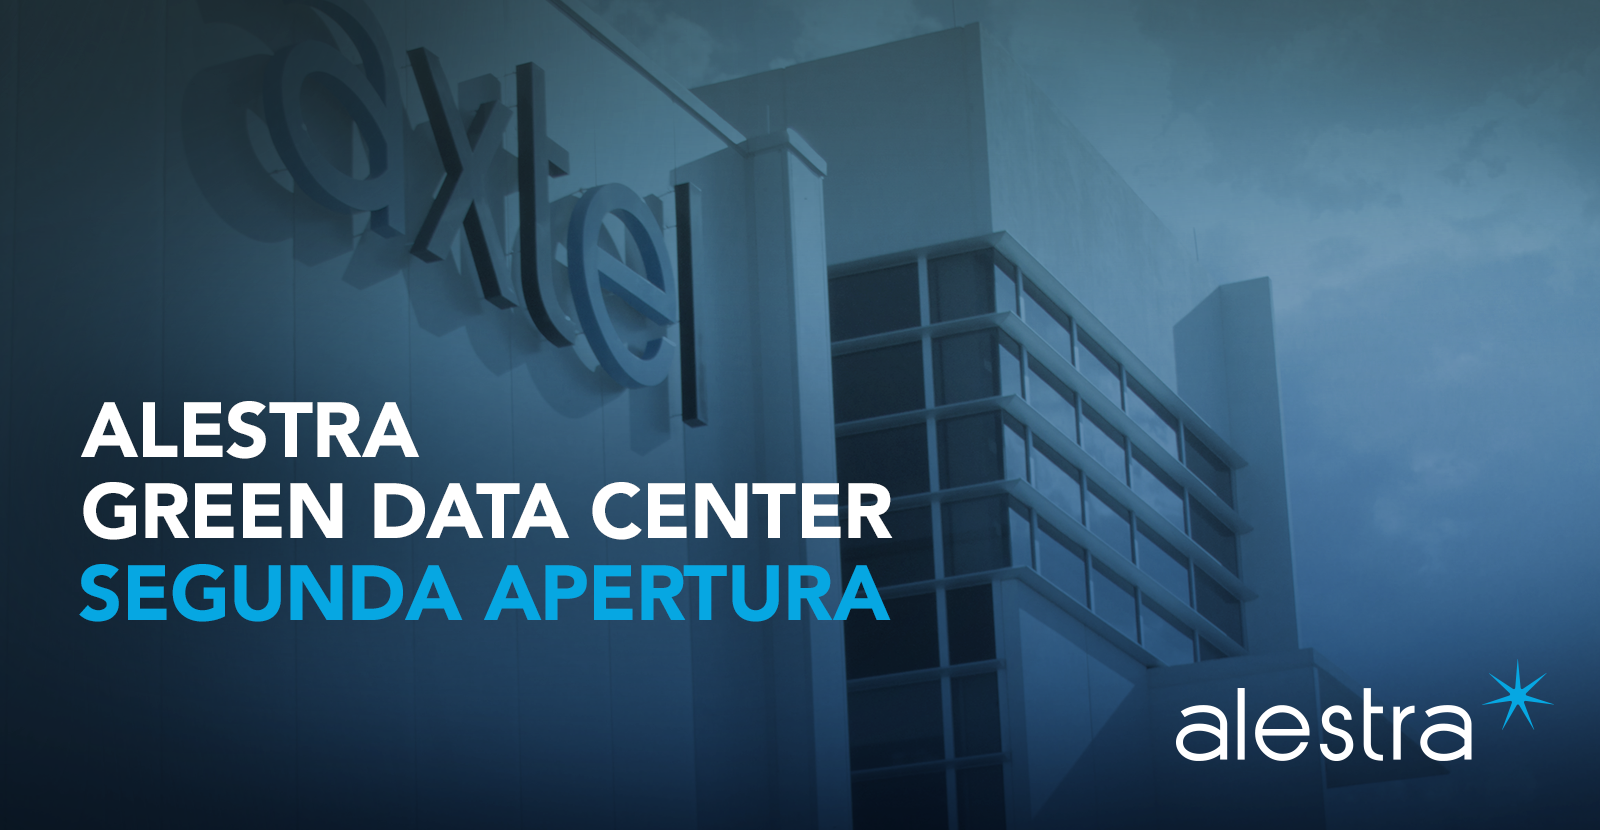 Alestra-Green-Data-Center-Segunda-Apertura.png